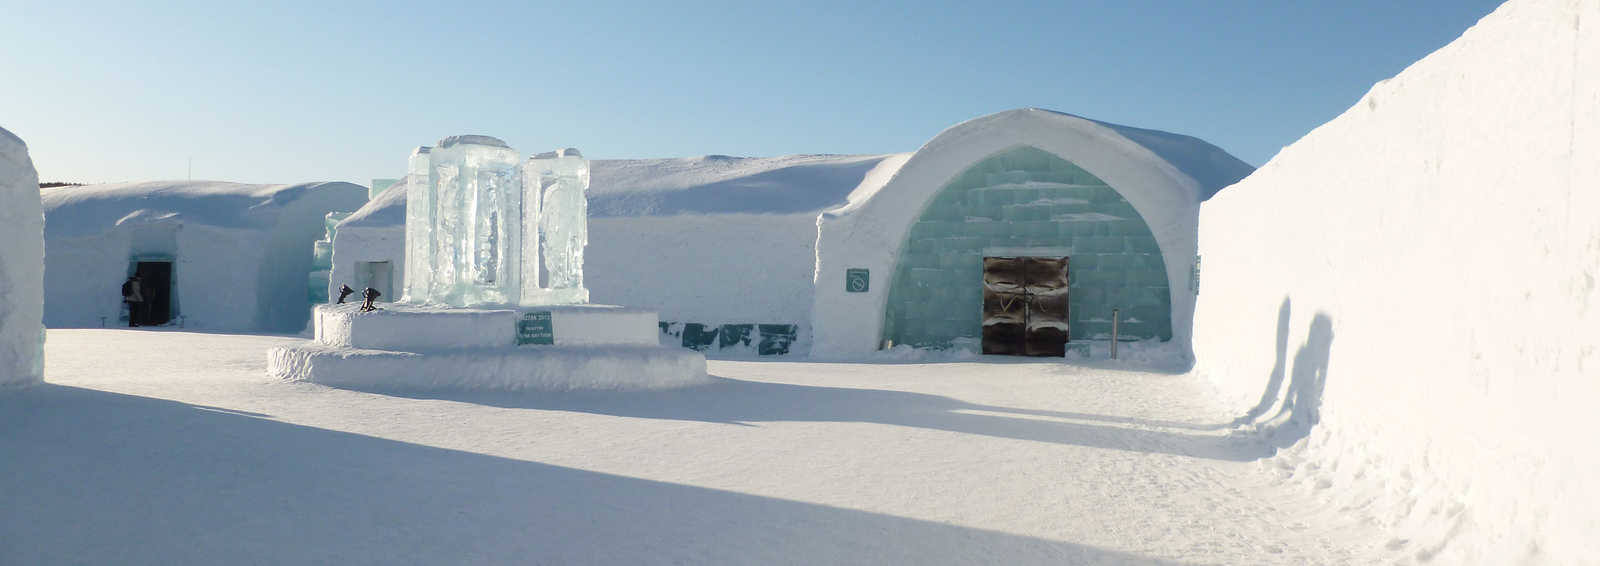 Icehotel entrance, Jukkasjarvi, Swedish Lapland